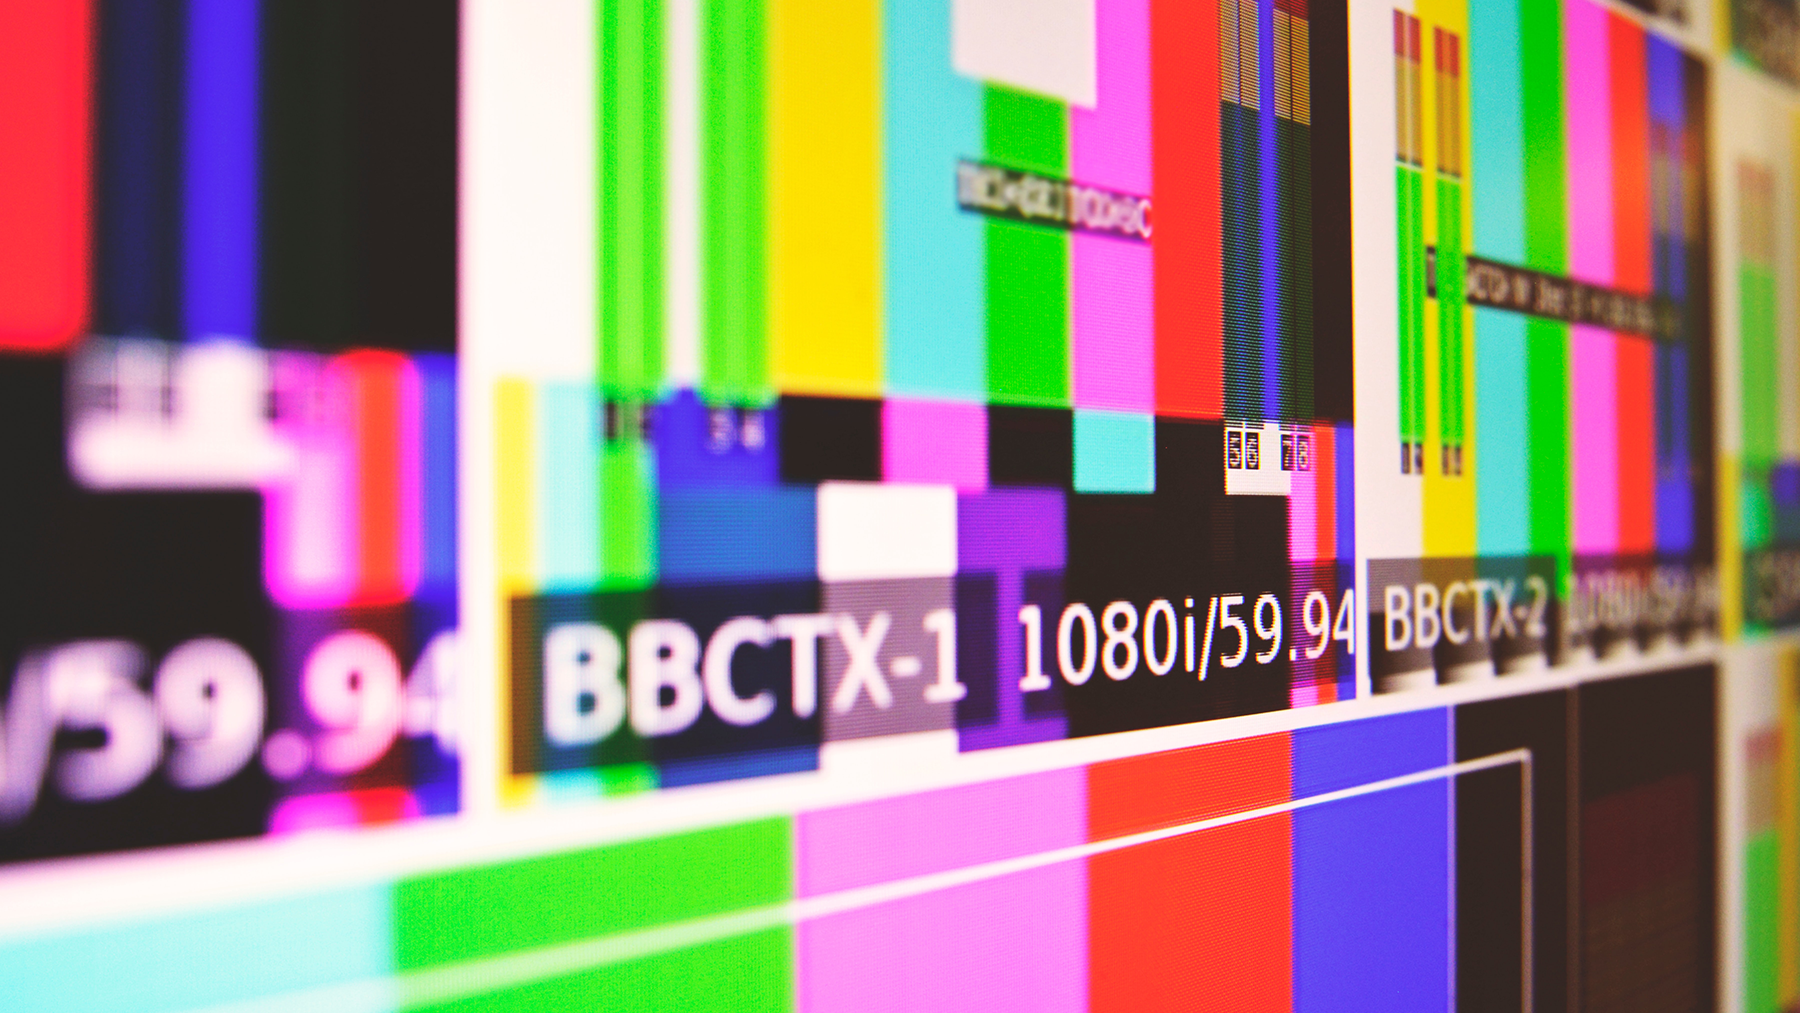 Test screen at a television studio